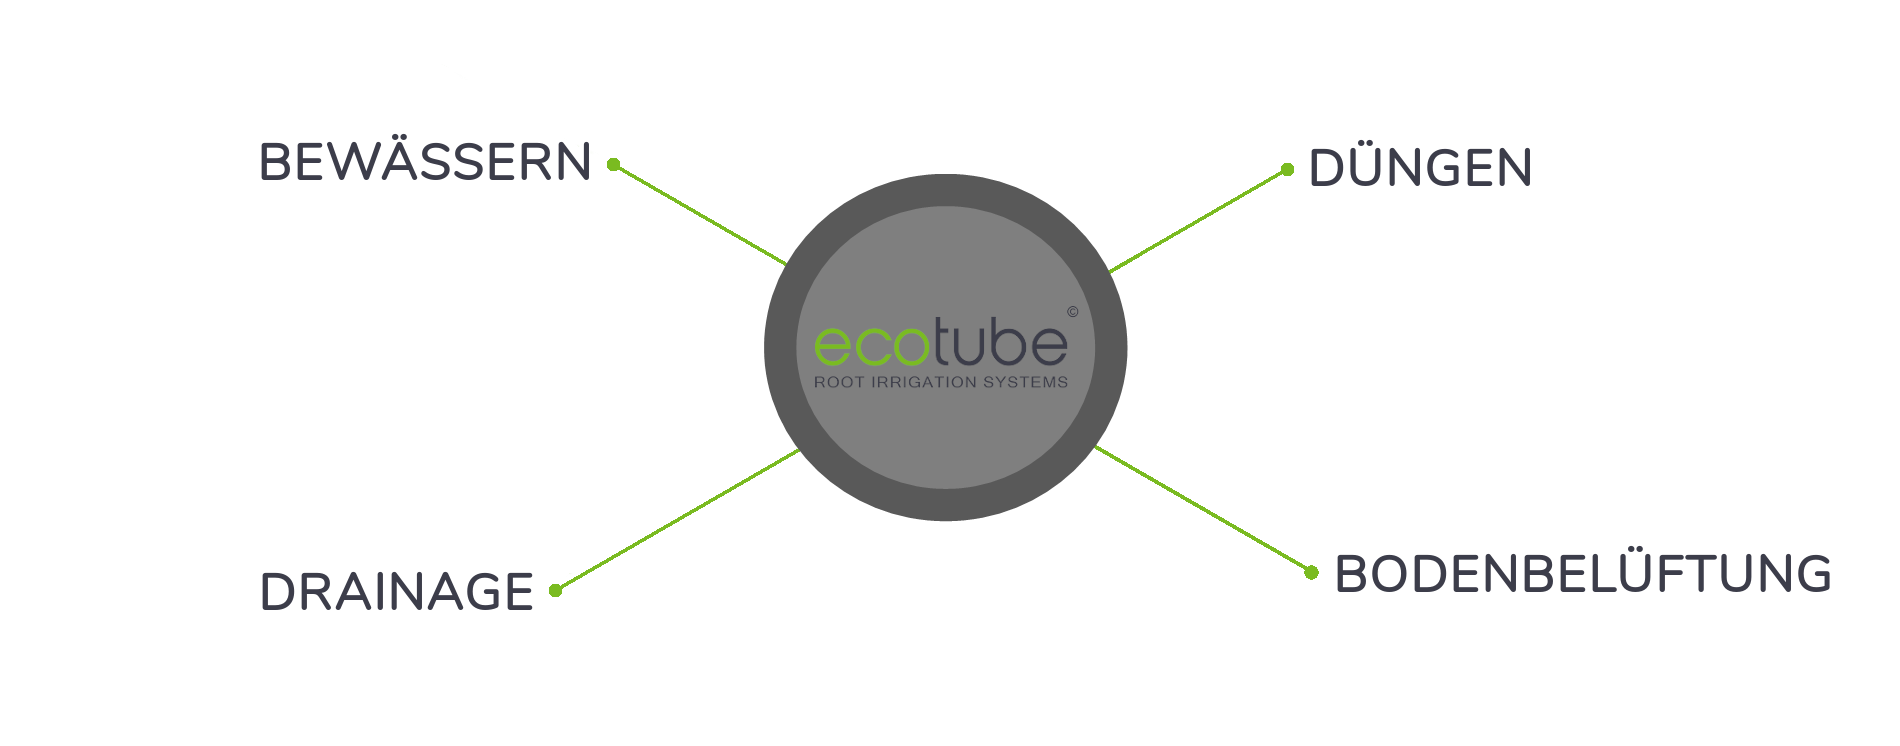 ecotube features